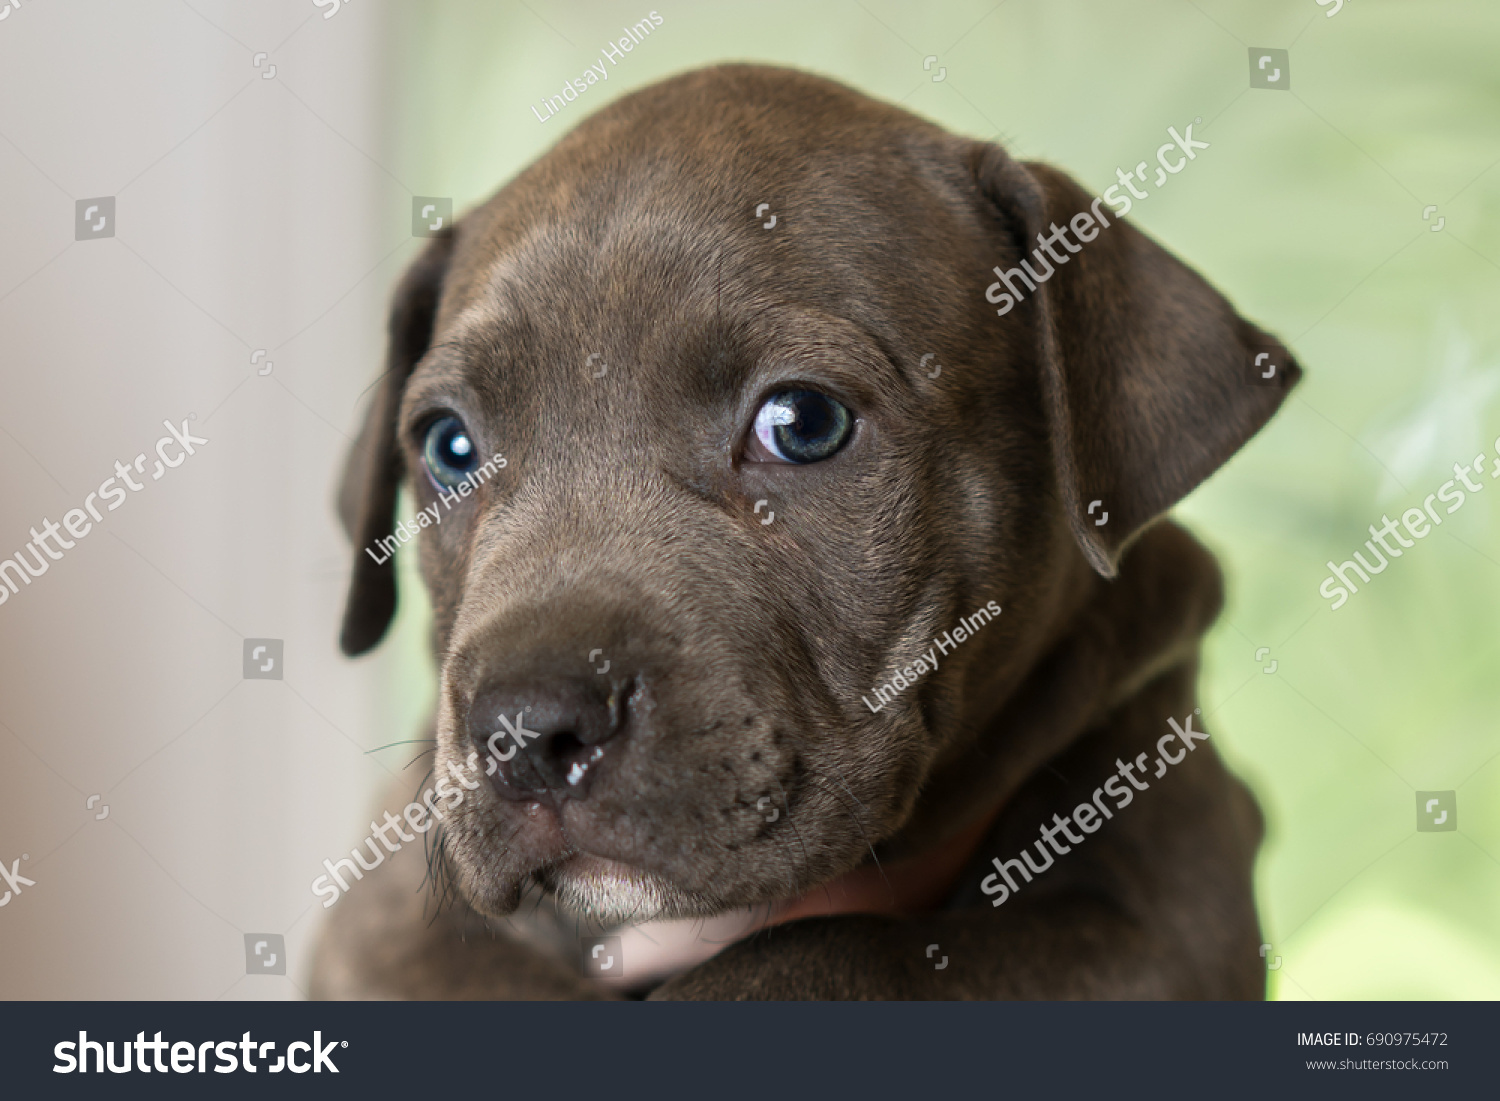 Good Grey Blue Eye Adorable Dog - stock-photo-mix-breed-grey-with-blue-eyes-puppy-canine-dog-being-held-up-looking-happy-pampered-hopeful-690975472  Image_607526  .jpg